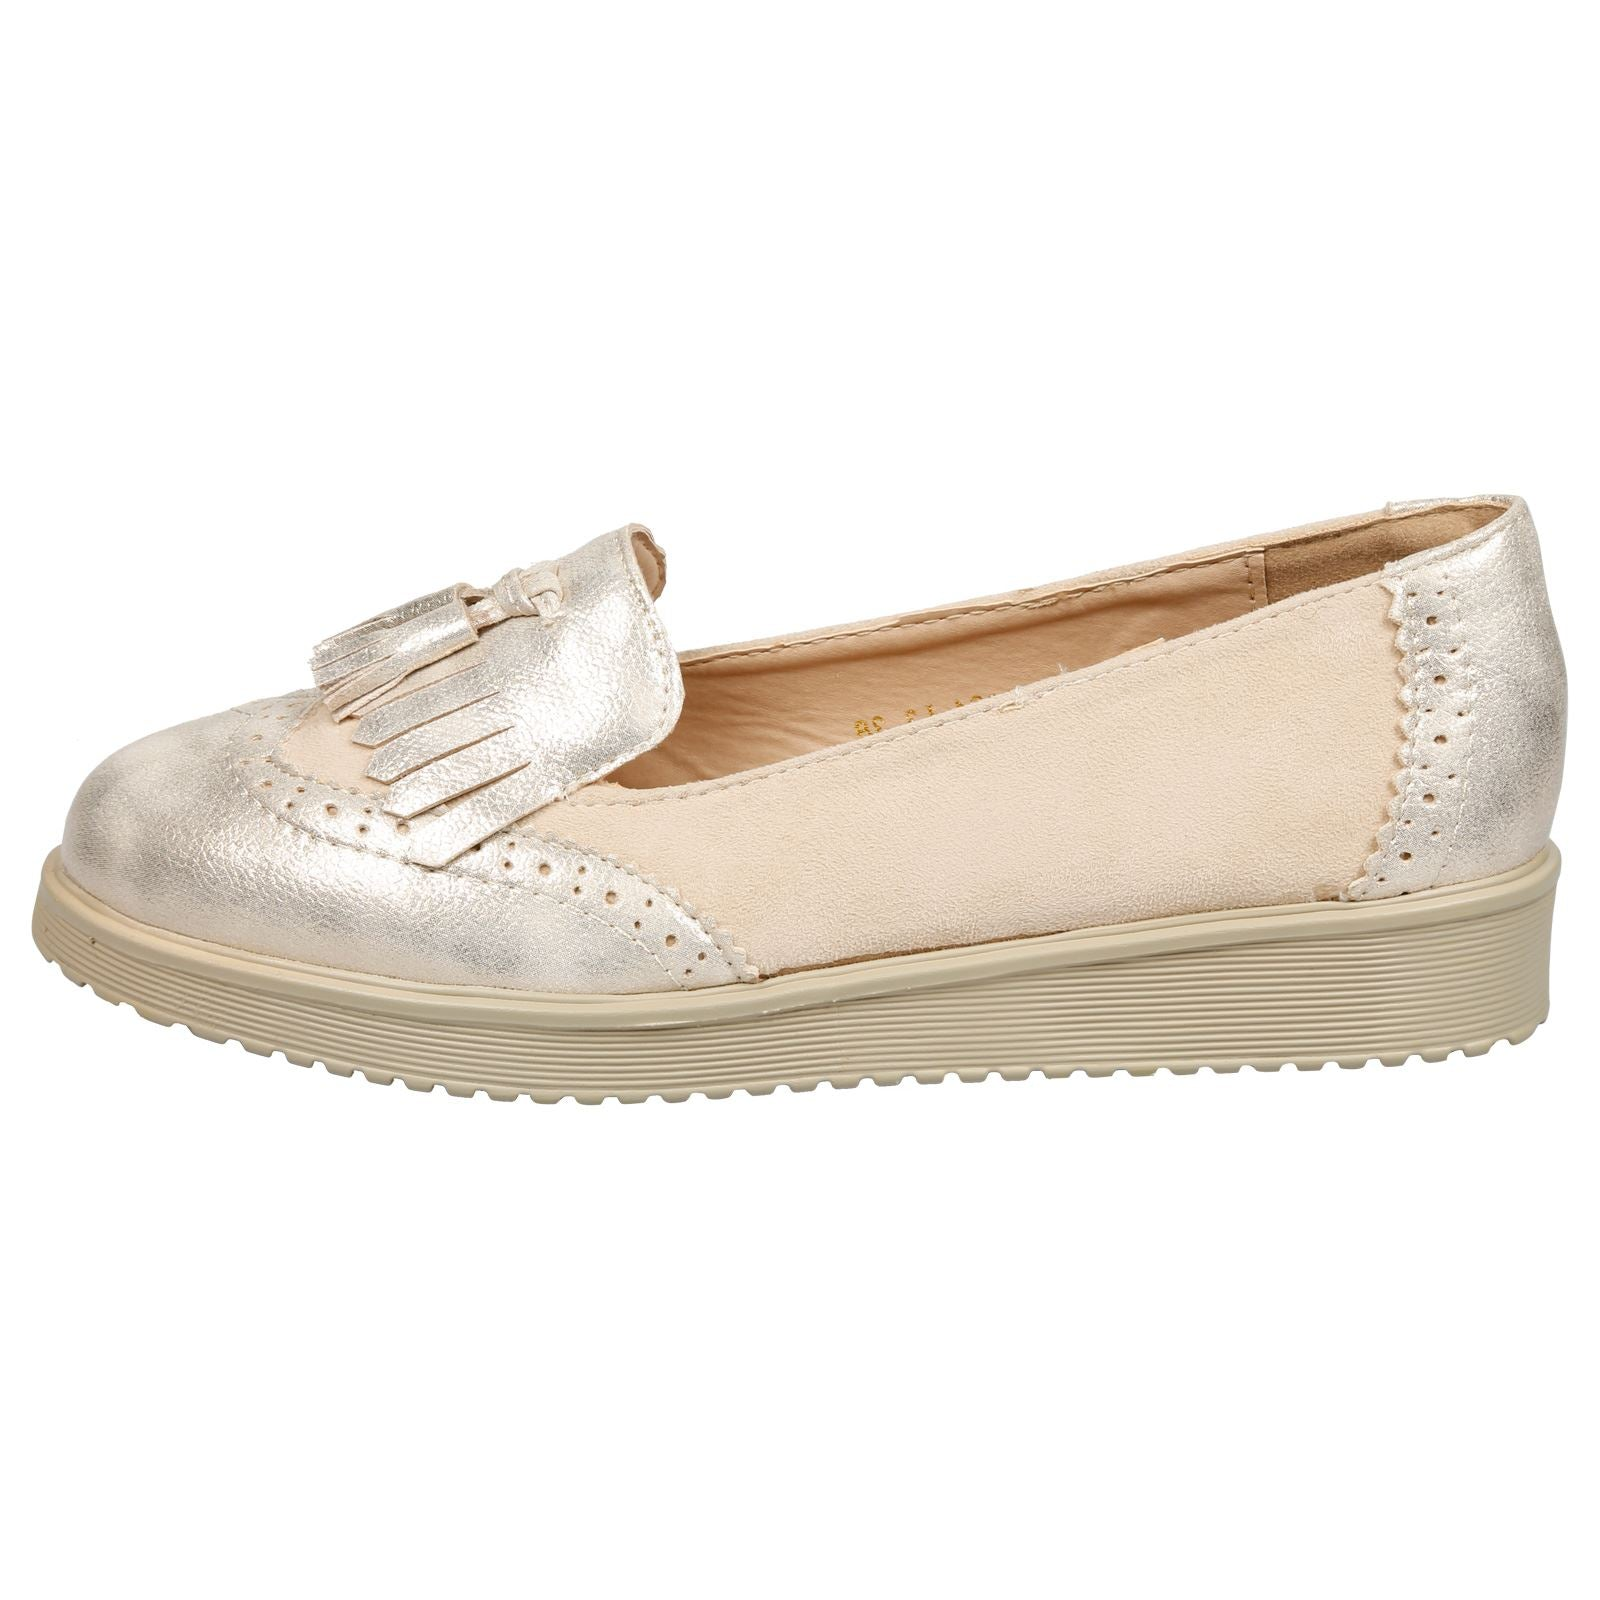 Leilani Two Tone Tassel Loafers in Beige Faux Suede & Gold Shimmer